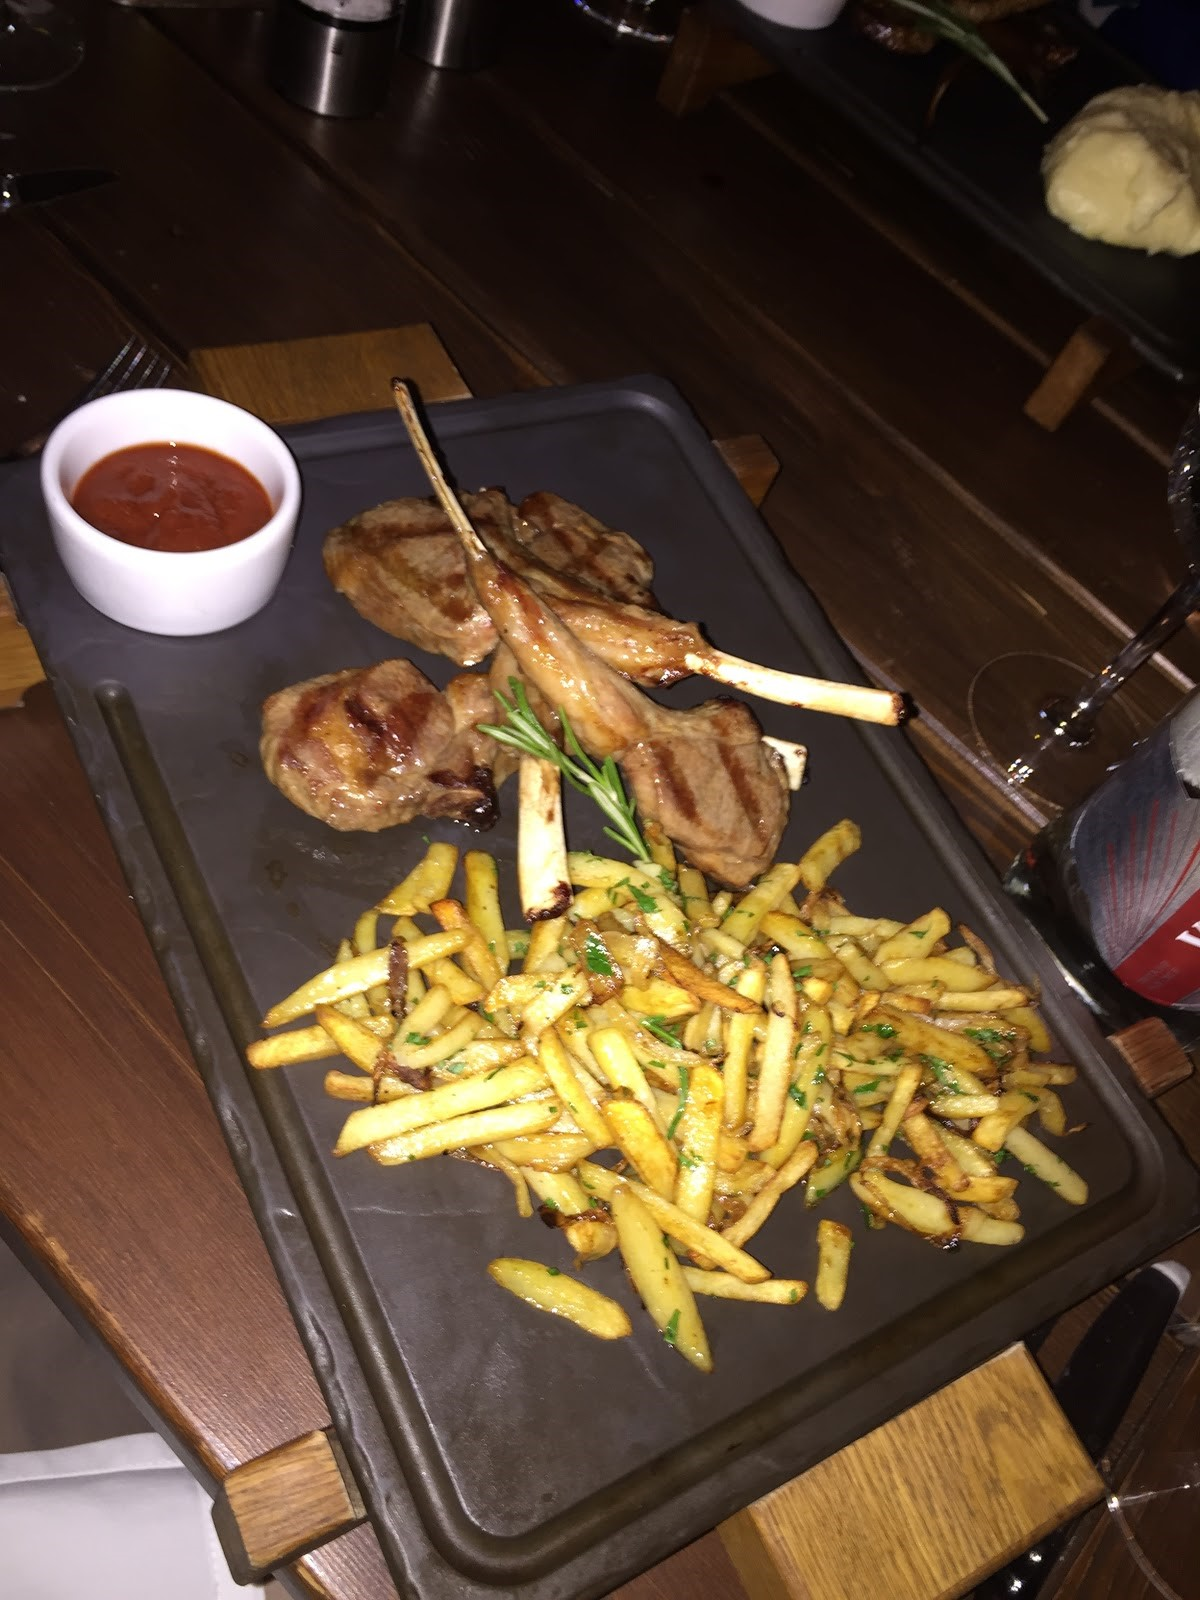 Here we see the big Russian portions of their meals. Rack of lamb and baked fries with onions! Also, a picture of some BRICers dining, the menus are also very extensive.